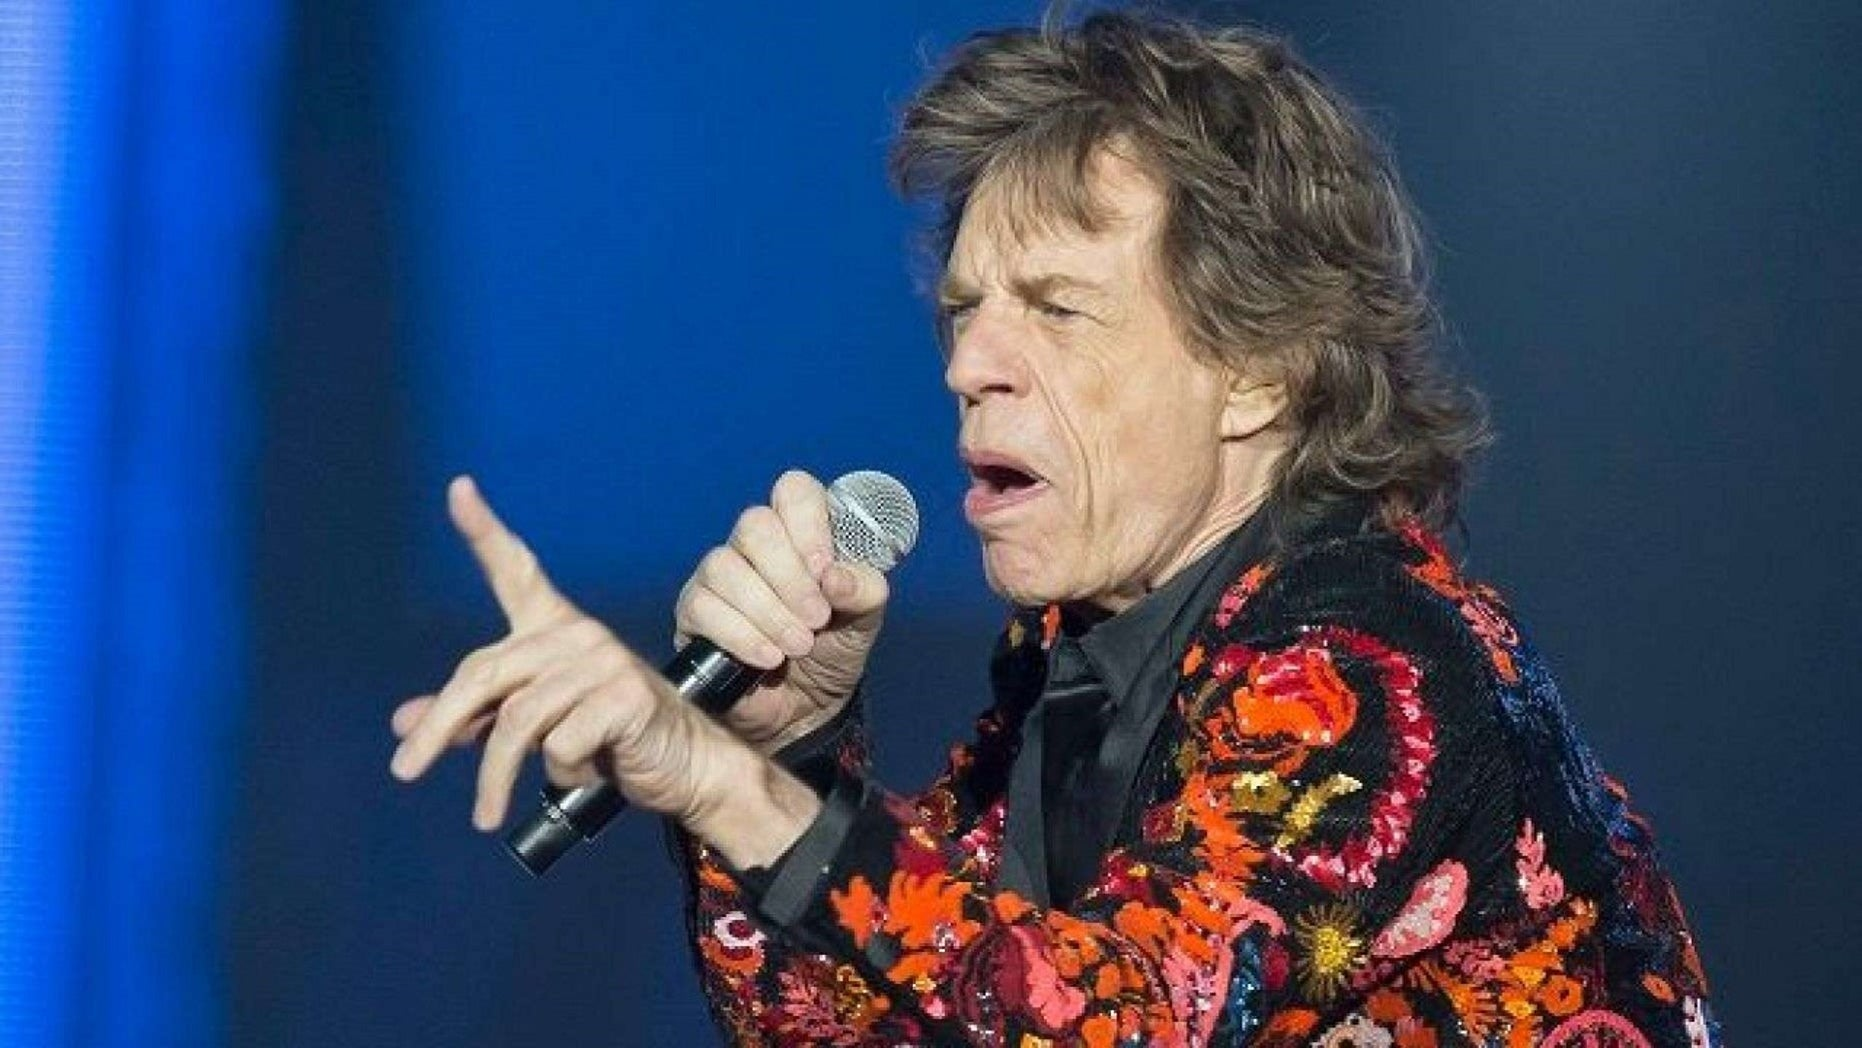 On Saturday, Rolling Stones announced that they are printing their upcoming tour dates in the US and Canada, so leader singer Mick Jagger may receive medical treatment.